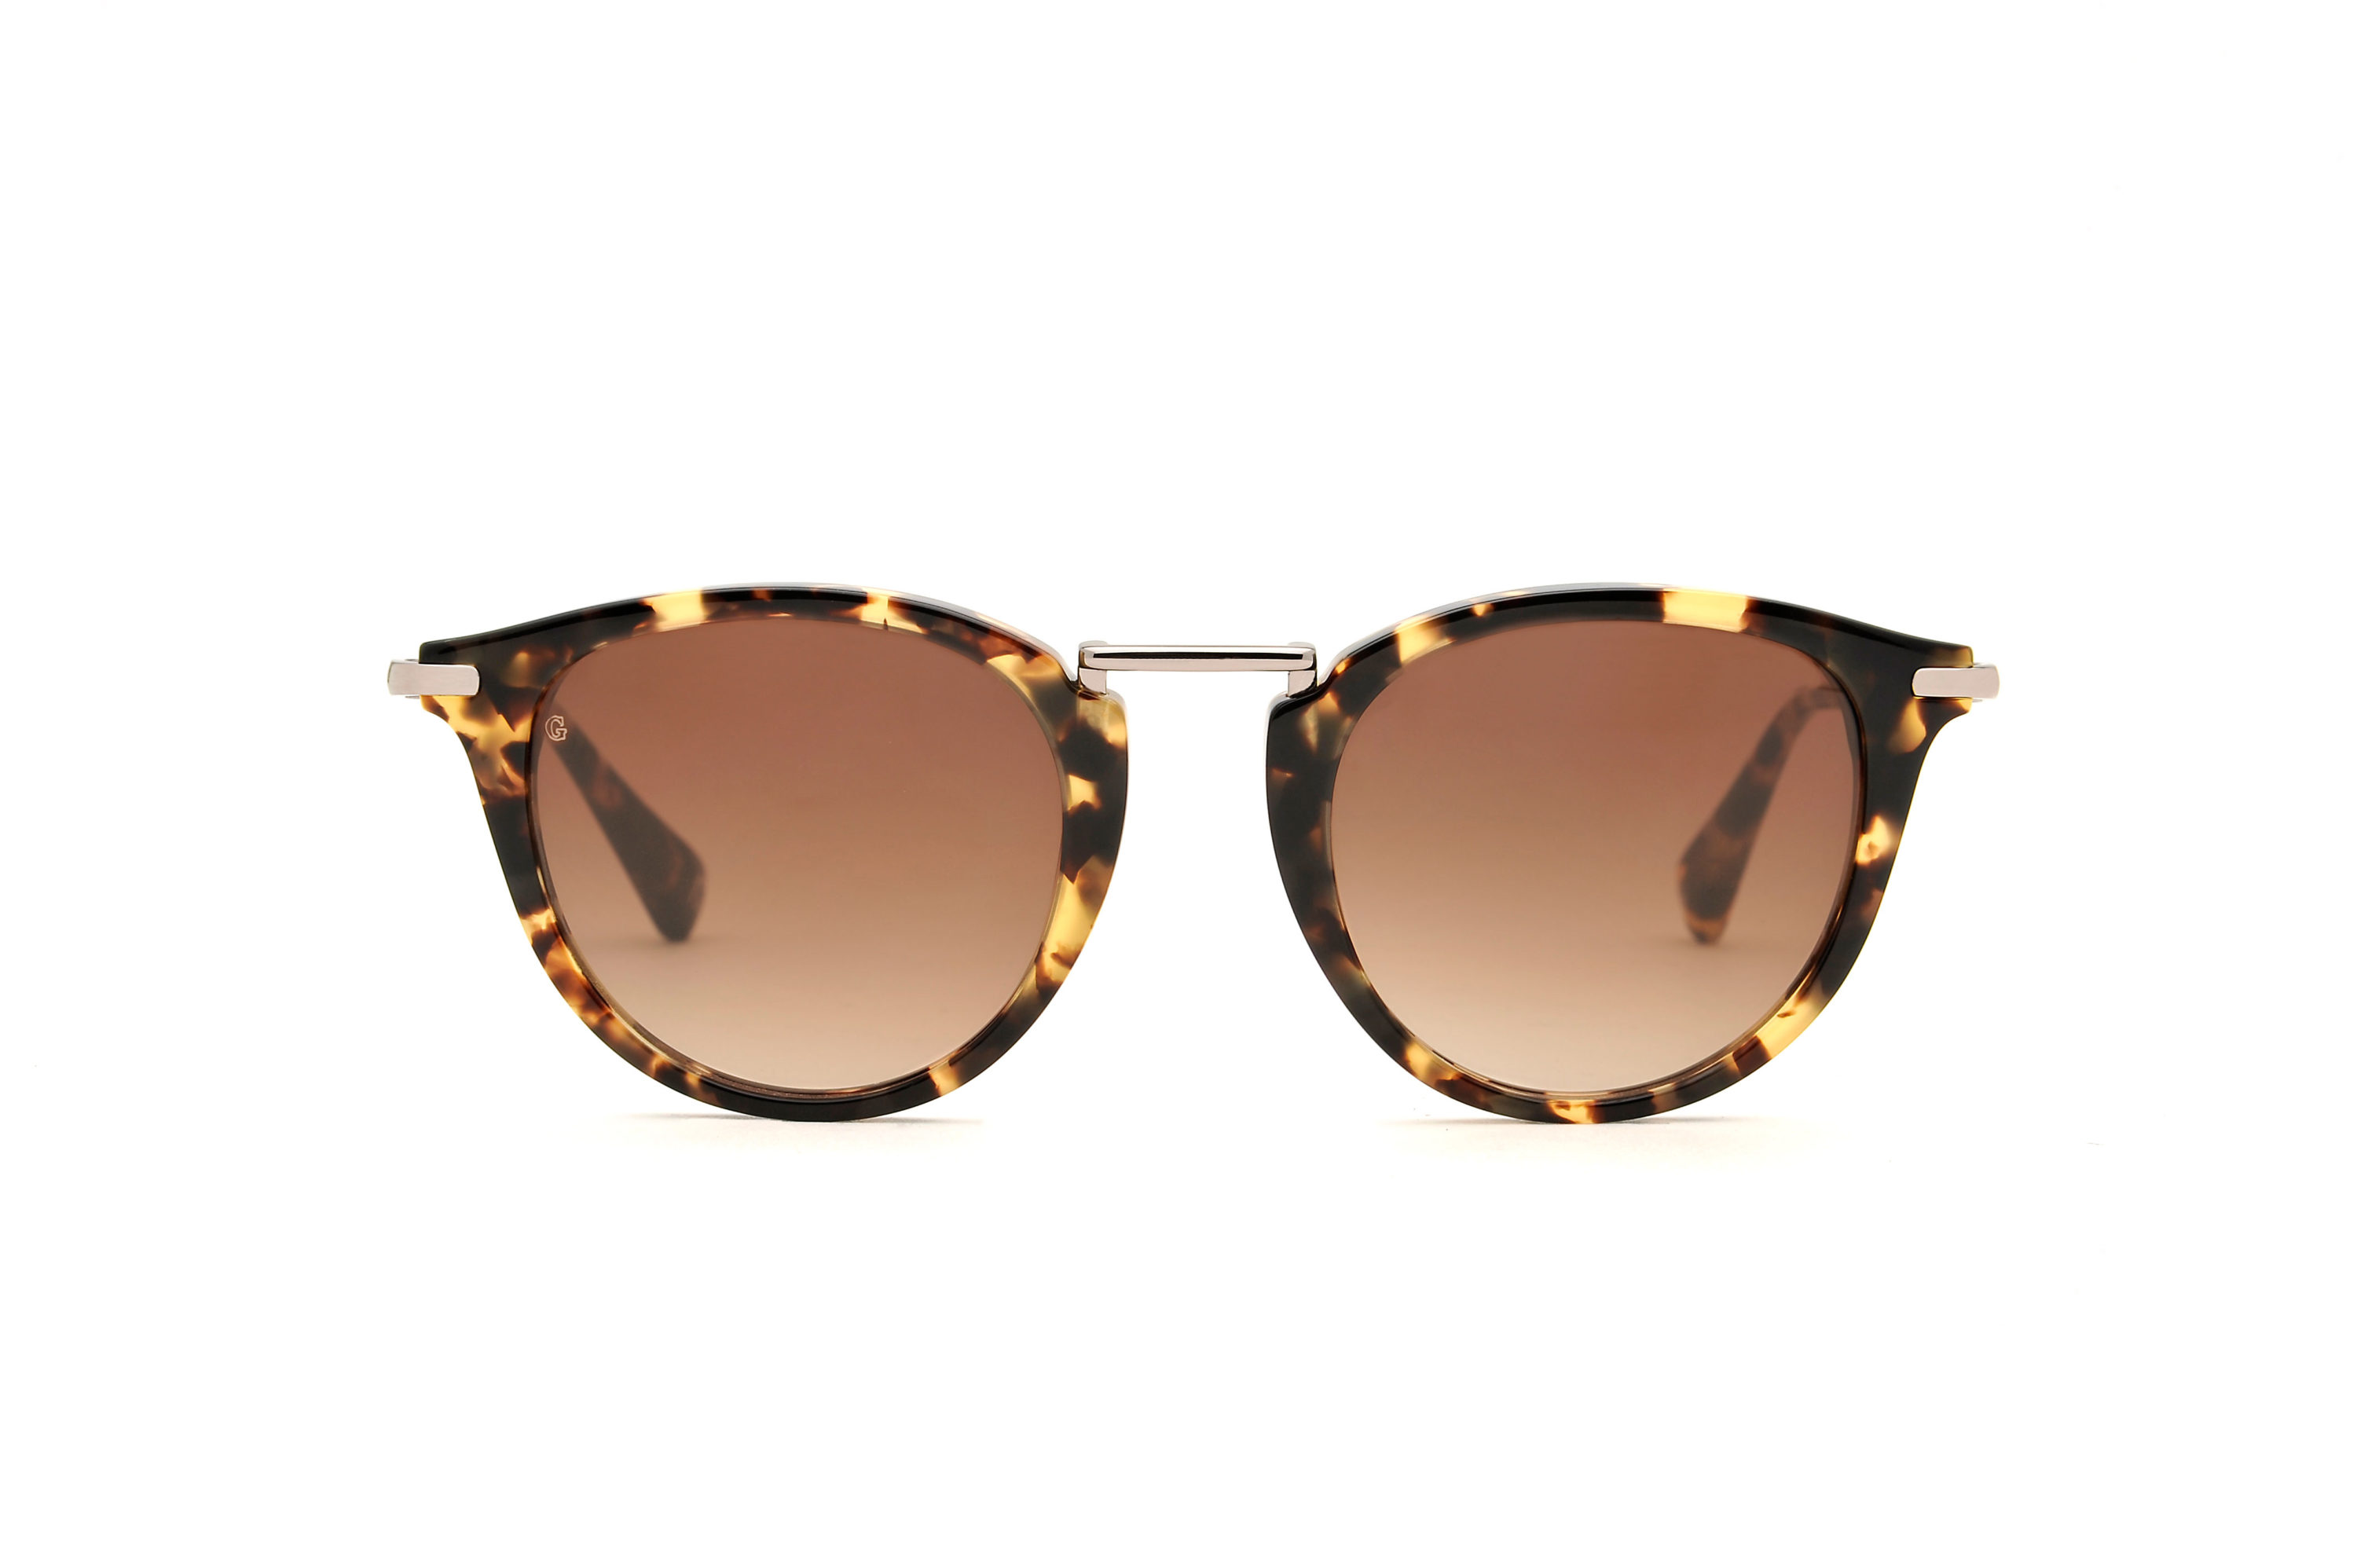 Lucky acetate/metal rounded tortoise sunglasses by GIGI Studios